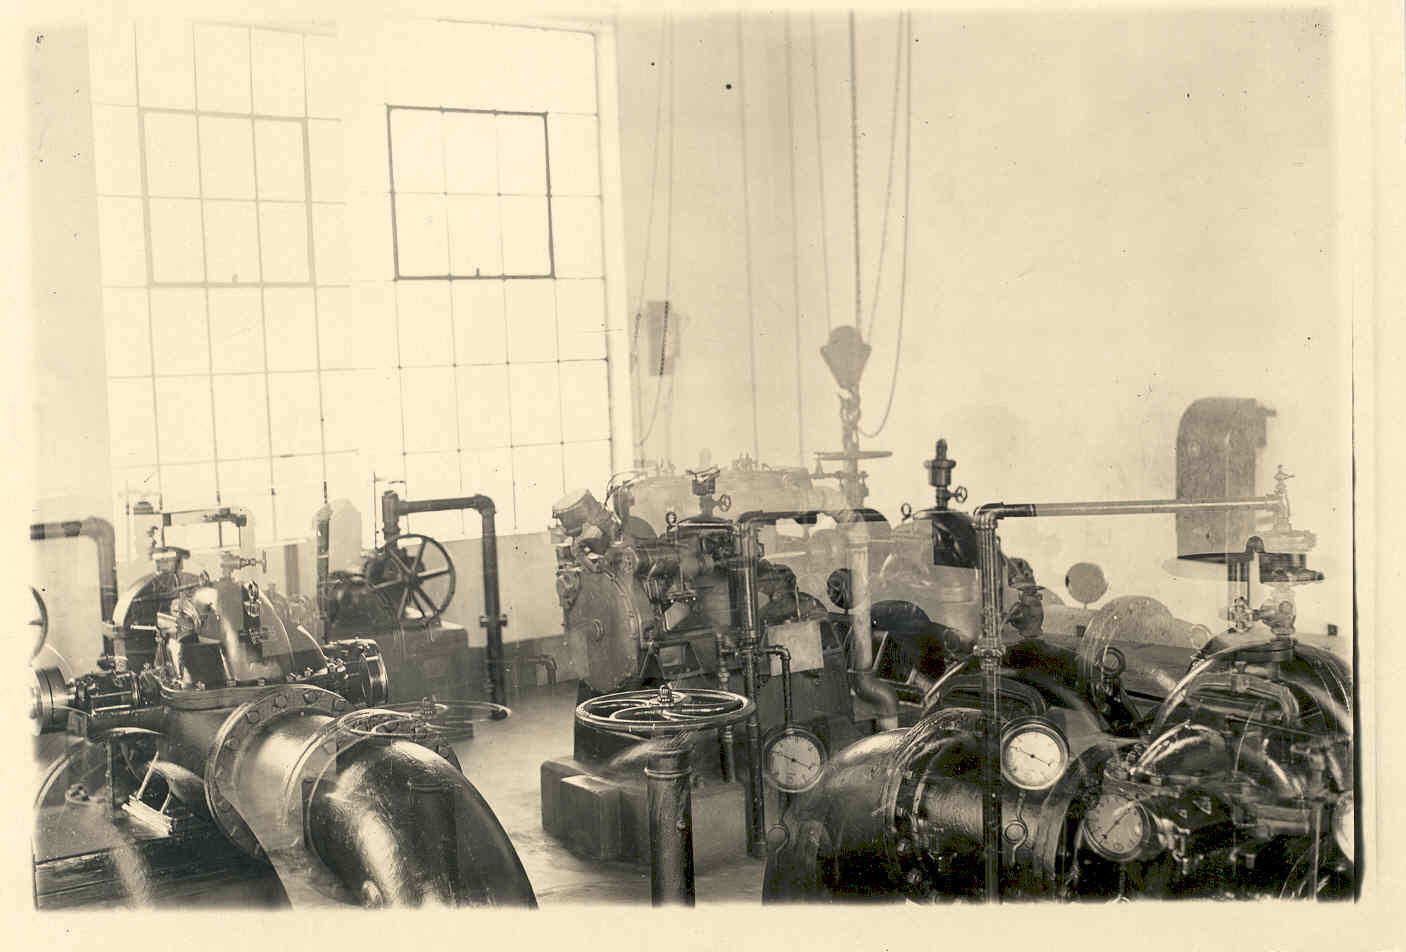 A historic photo of the inside of the Vest Wastewater Plant in the 1920's. These devices controlled water flow and chemicals.